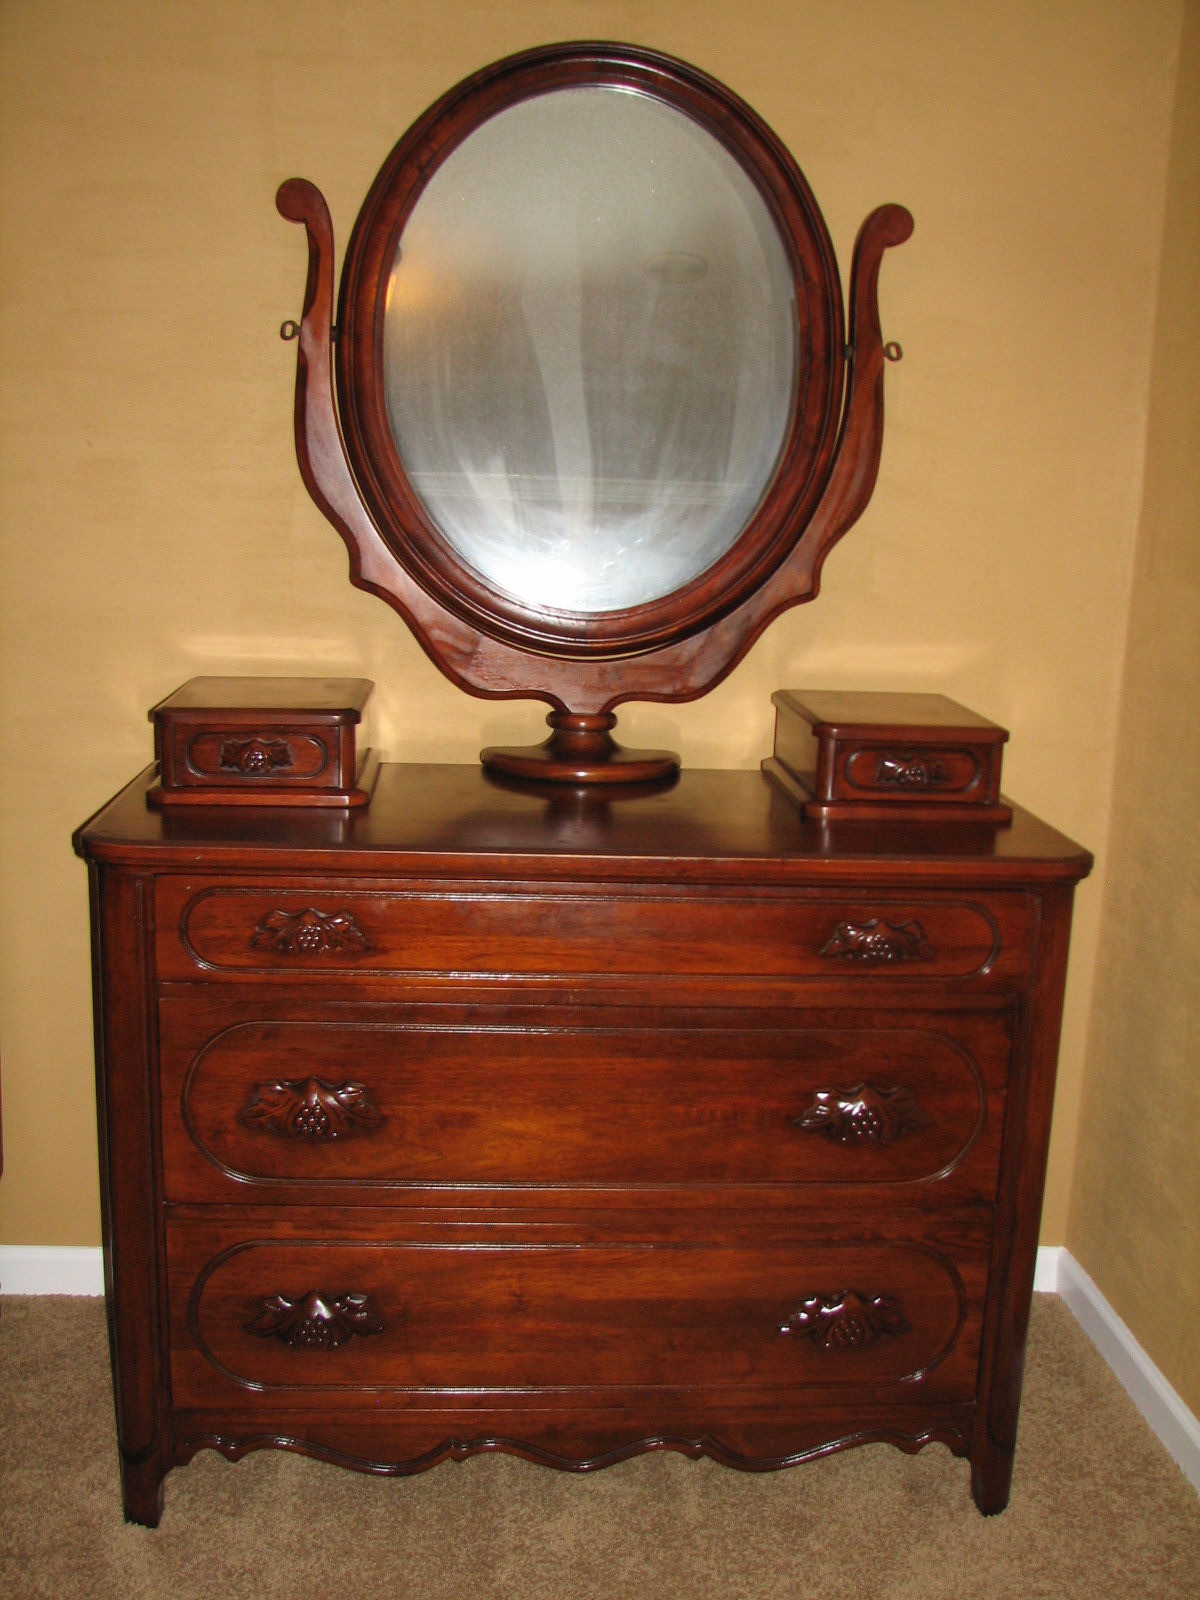 ori 655 dresser with mirror with drawers